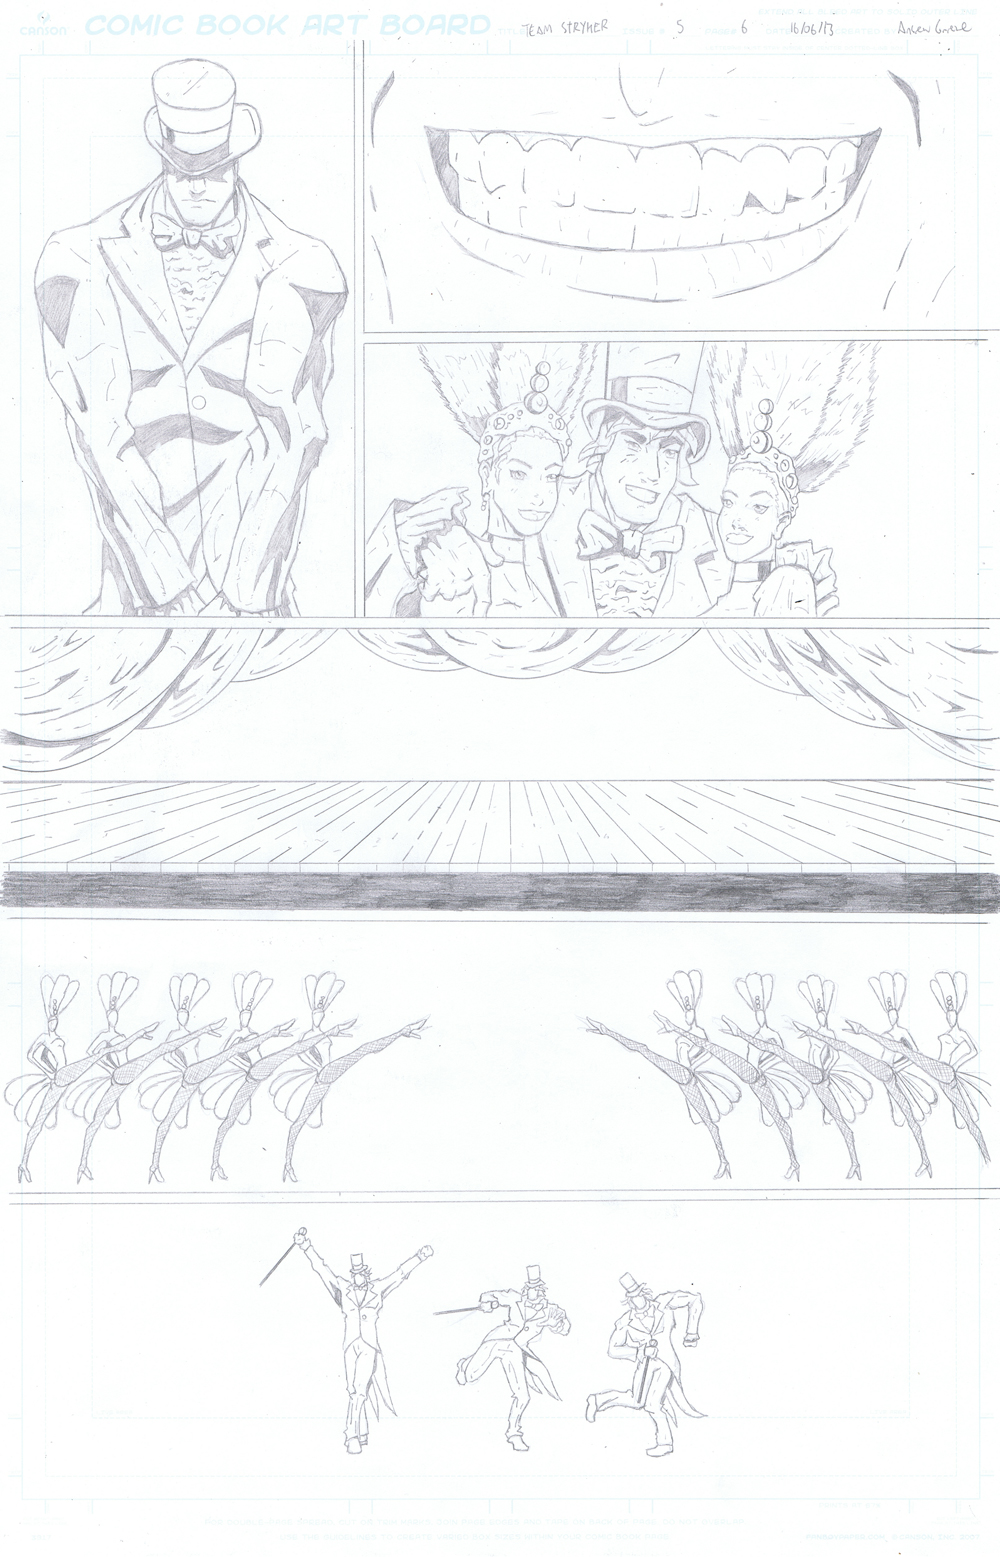 MISSION 005: PAGE 06 PENCIL